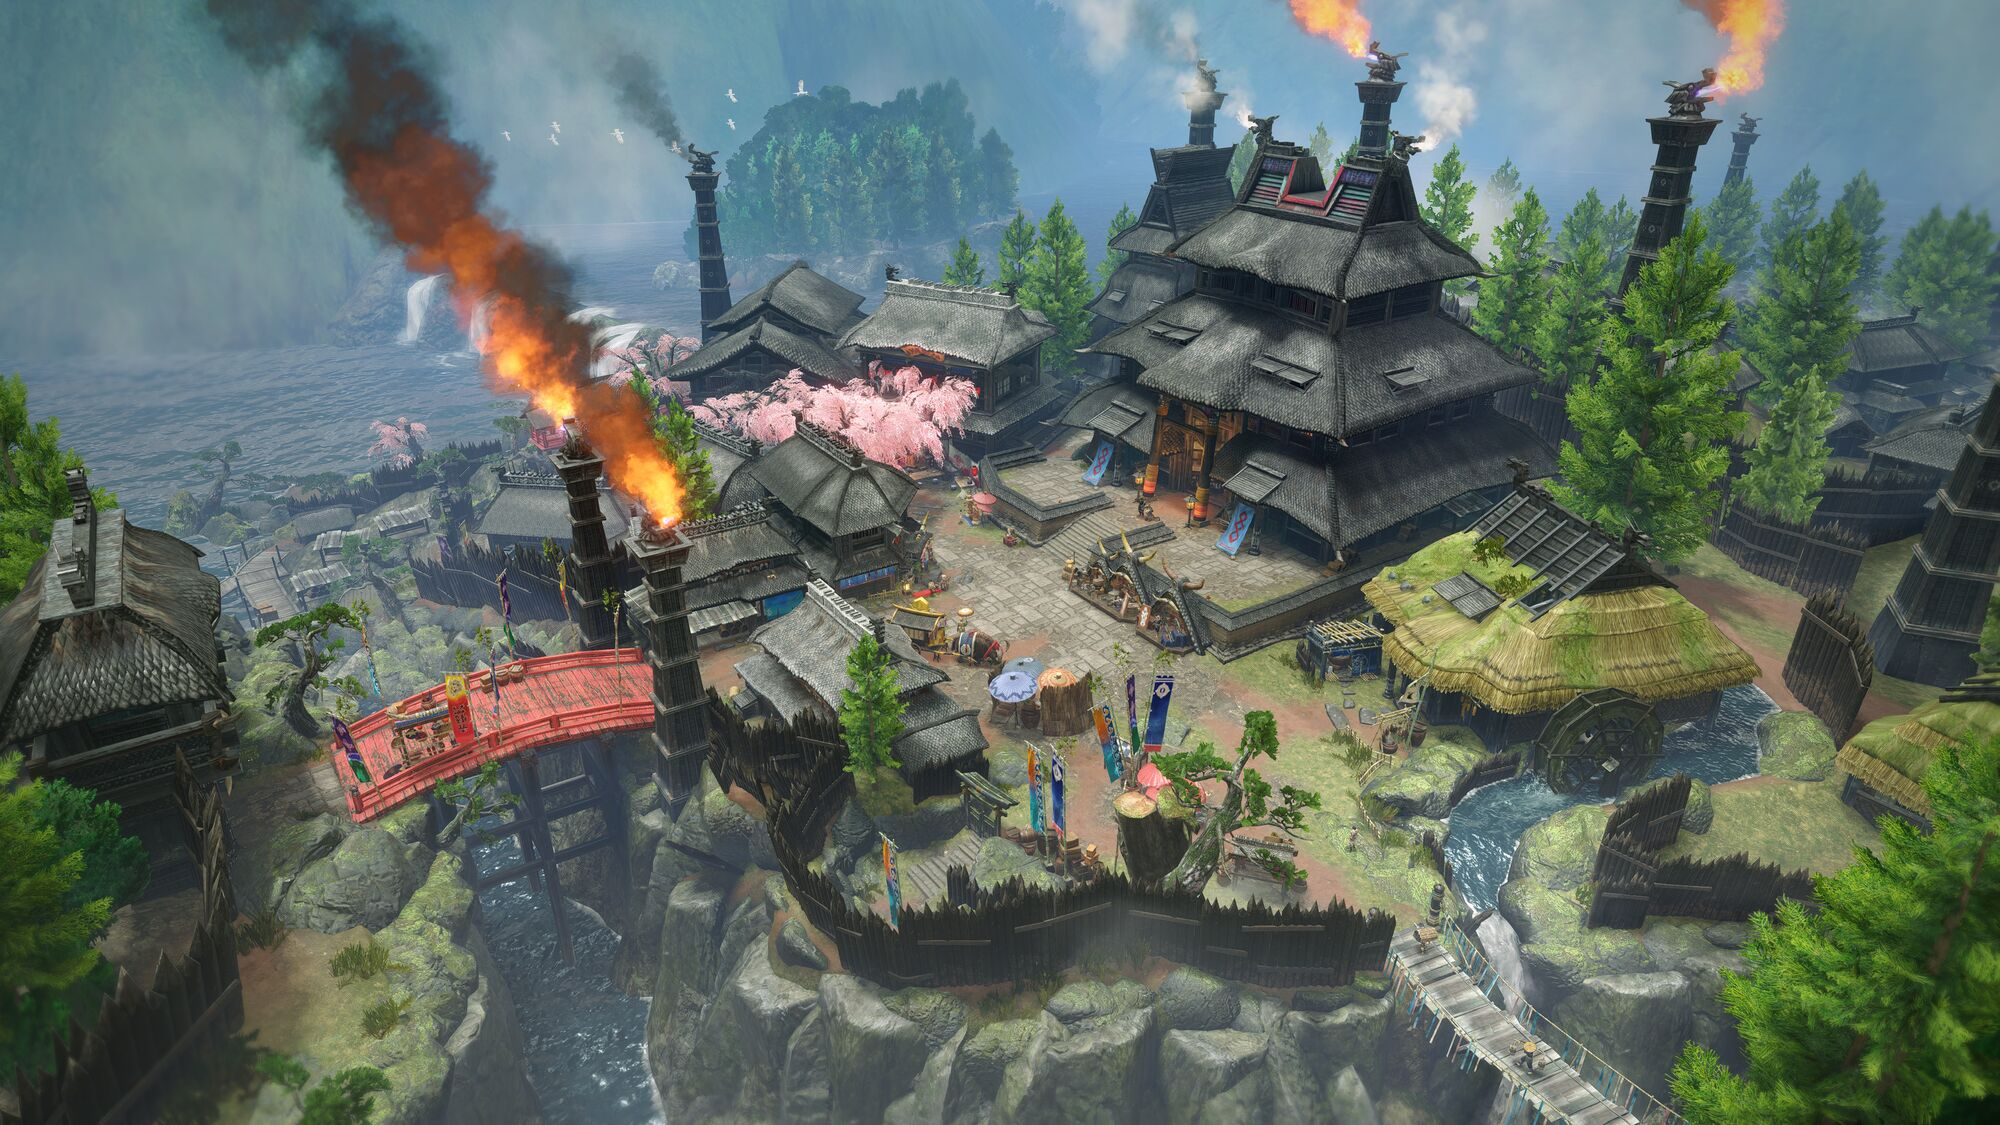 Monster Hunter, the image shows a view of the village that you are based in.